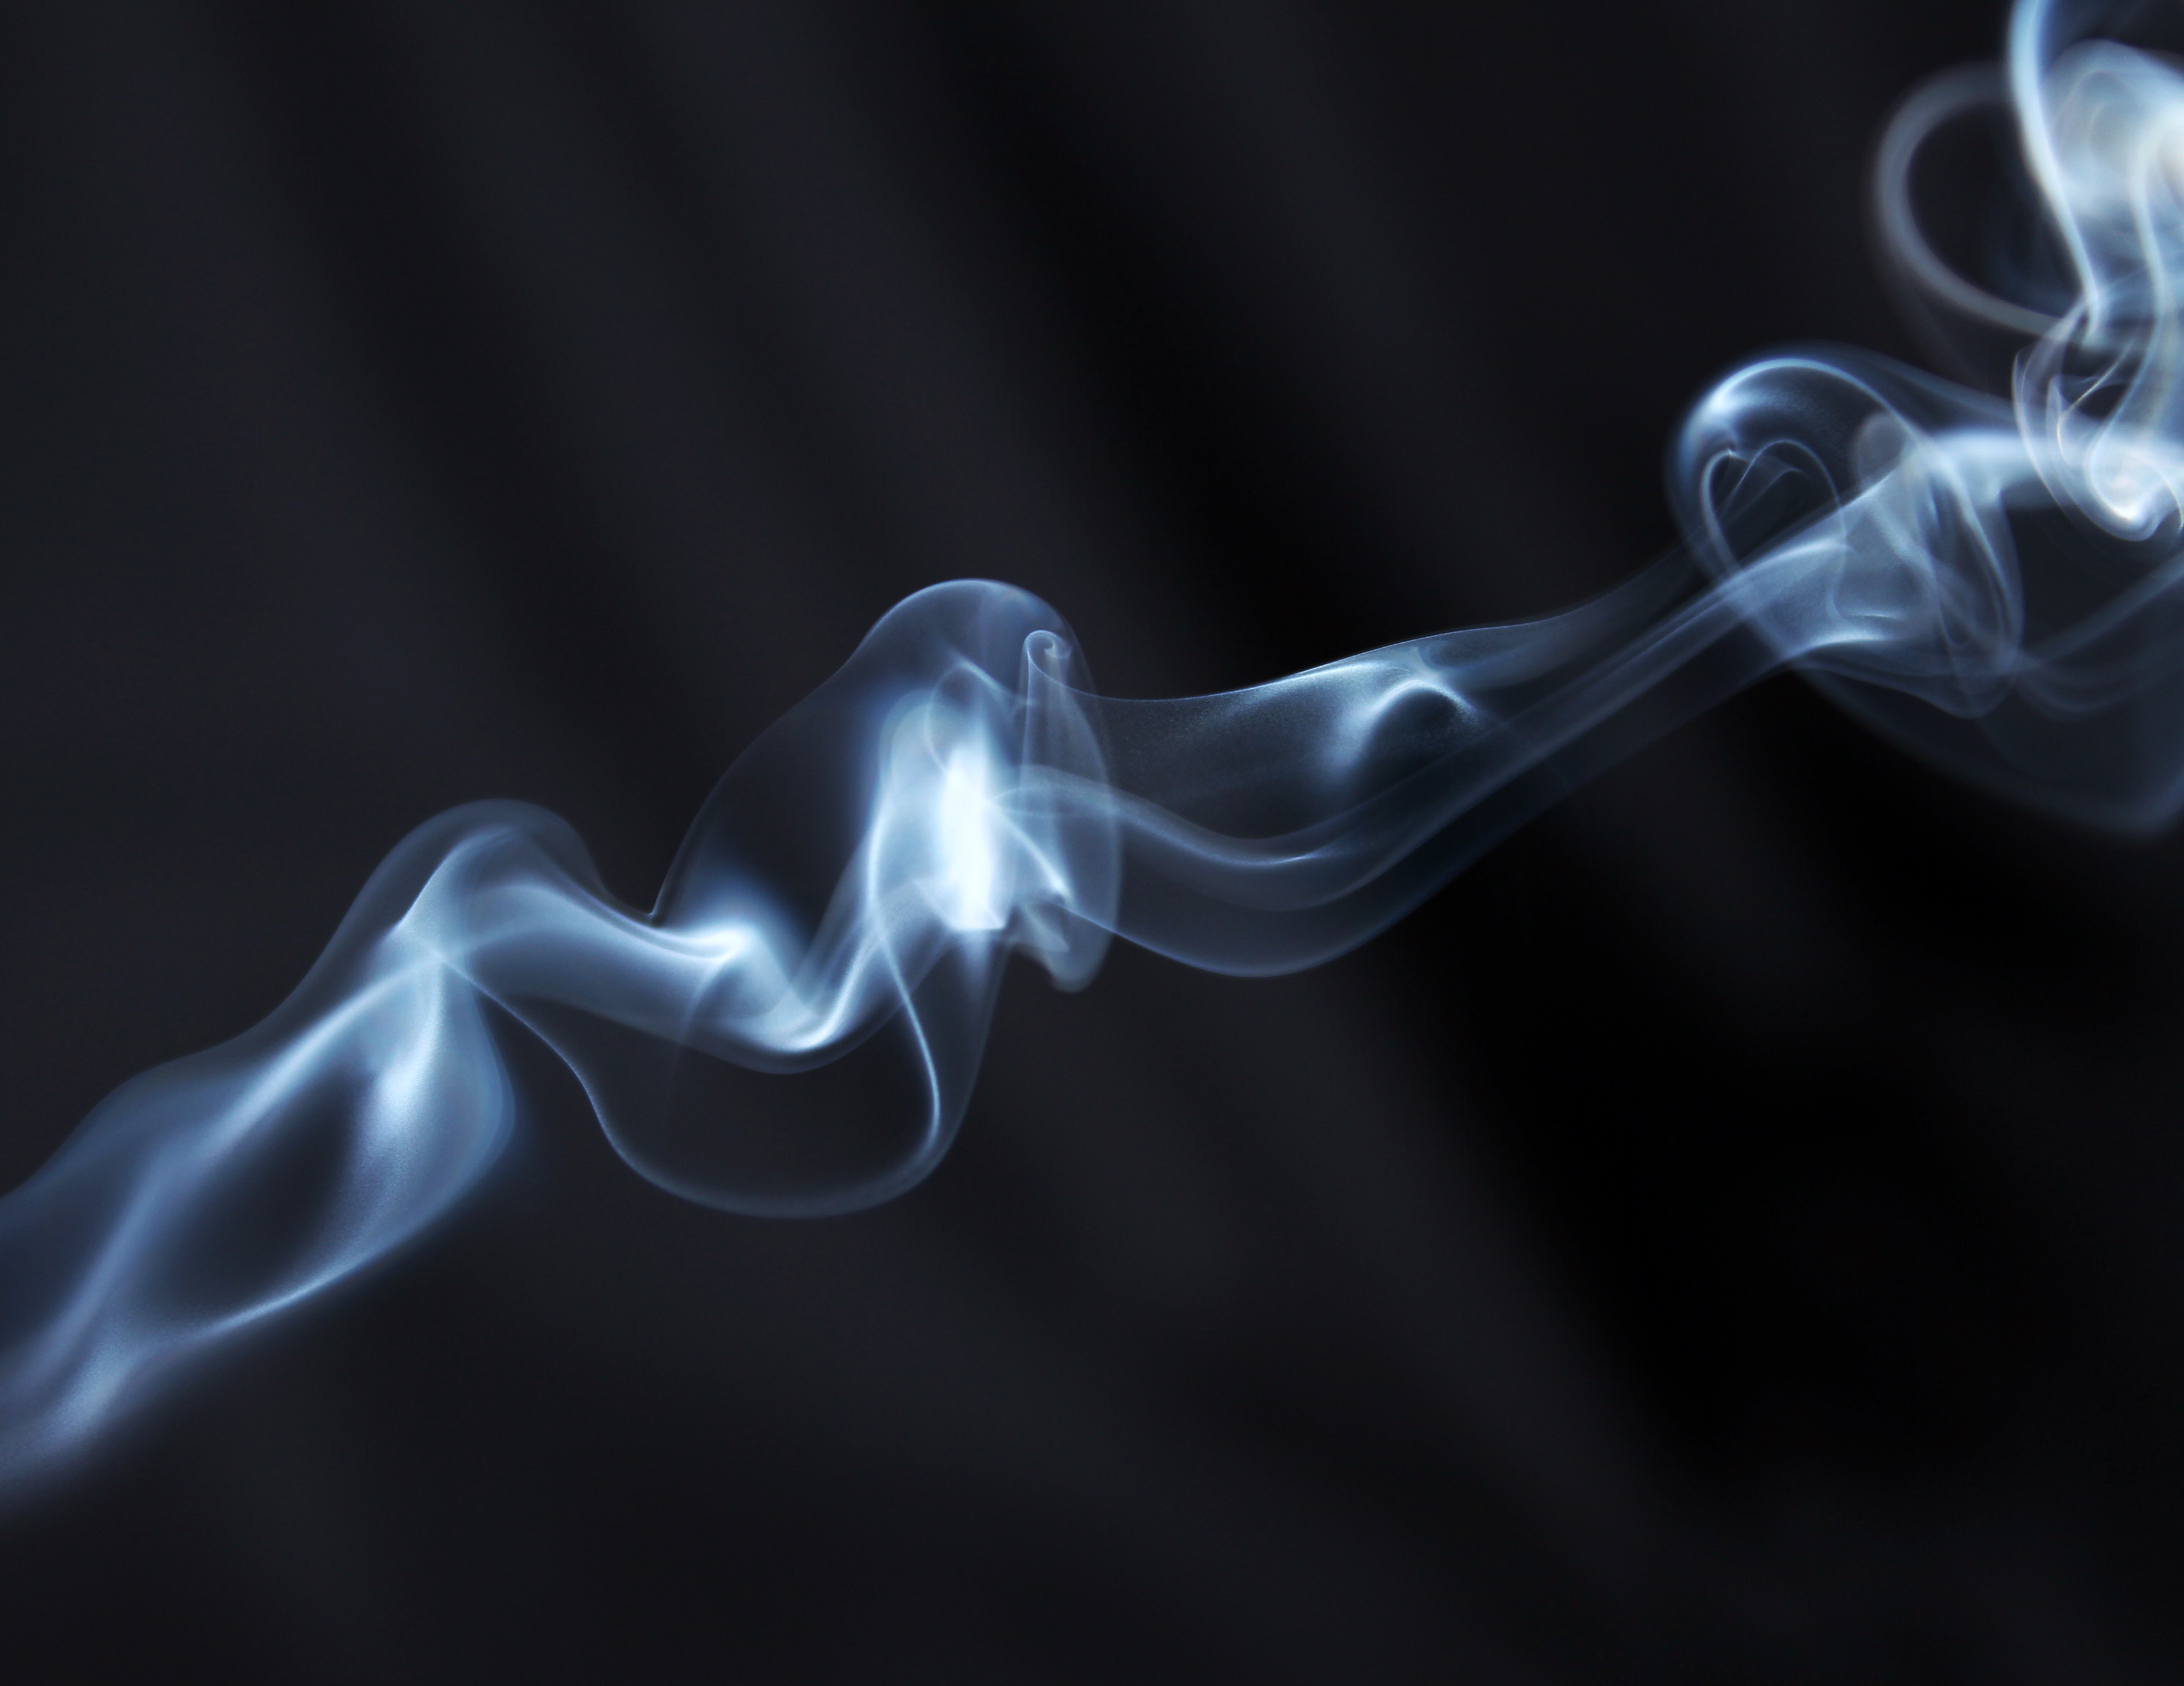 smoke photos 1